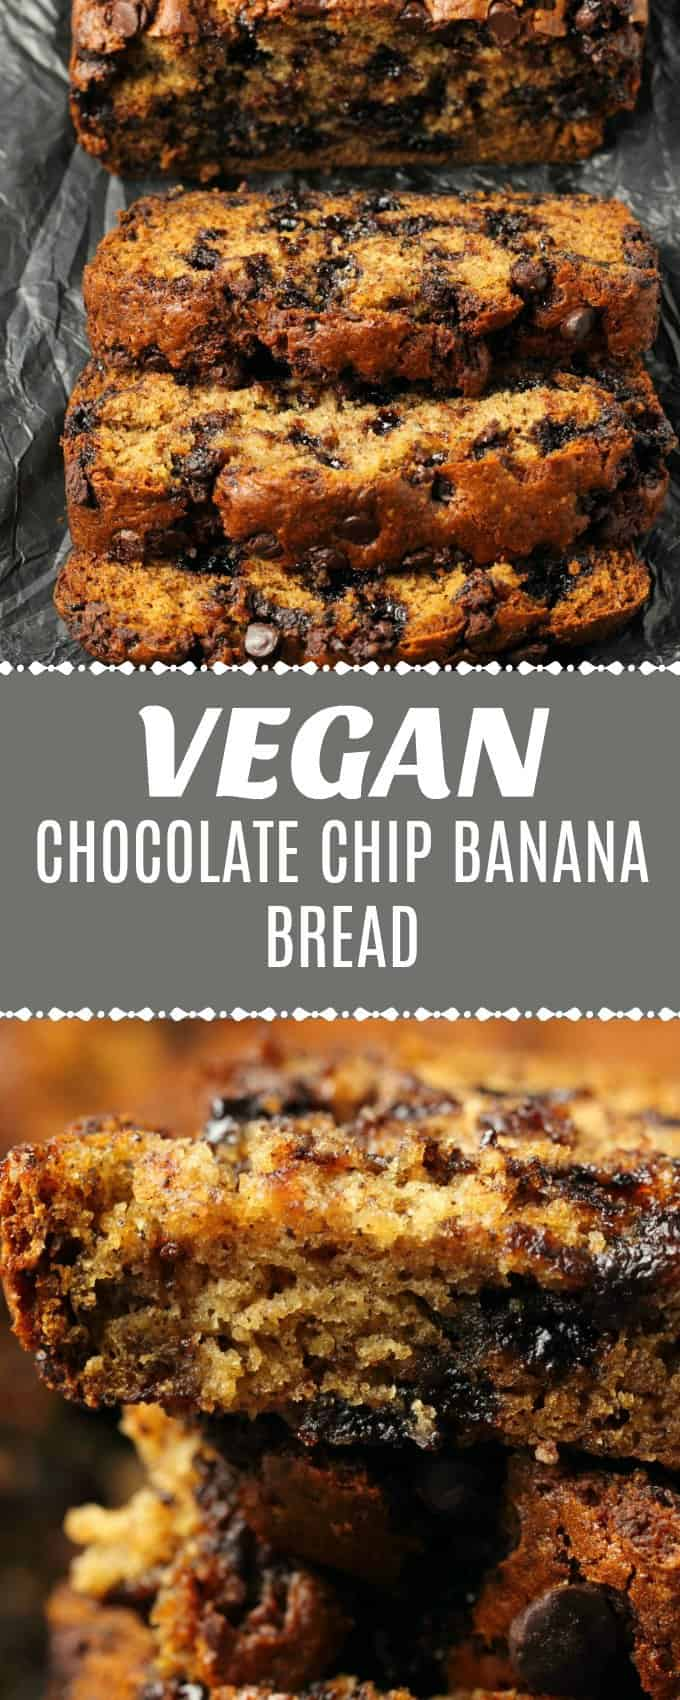 Vegan chocolate chip banana bread that is perfectly moist, rich, deliciously sweet and packed with banana flavor! Ideal for dessert or breakfast! | lovingitvegan.com